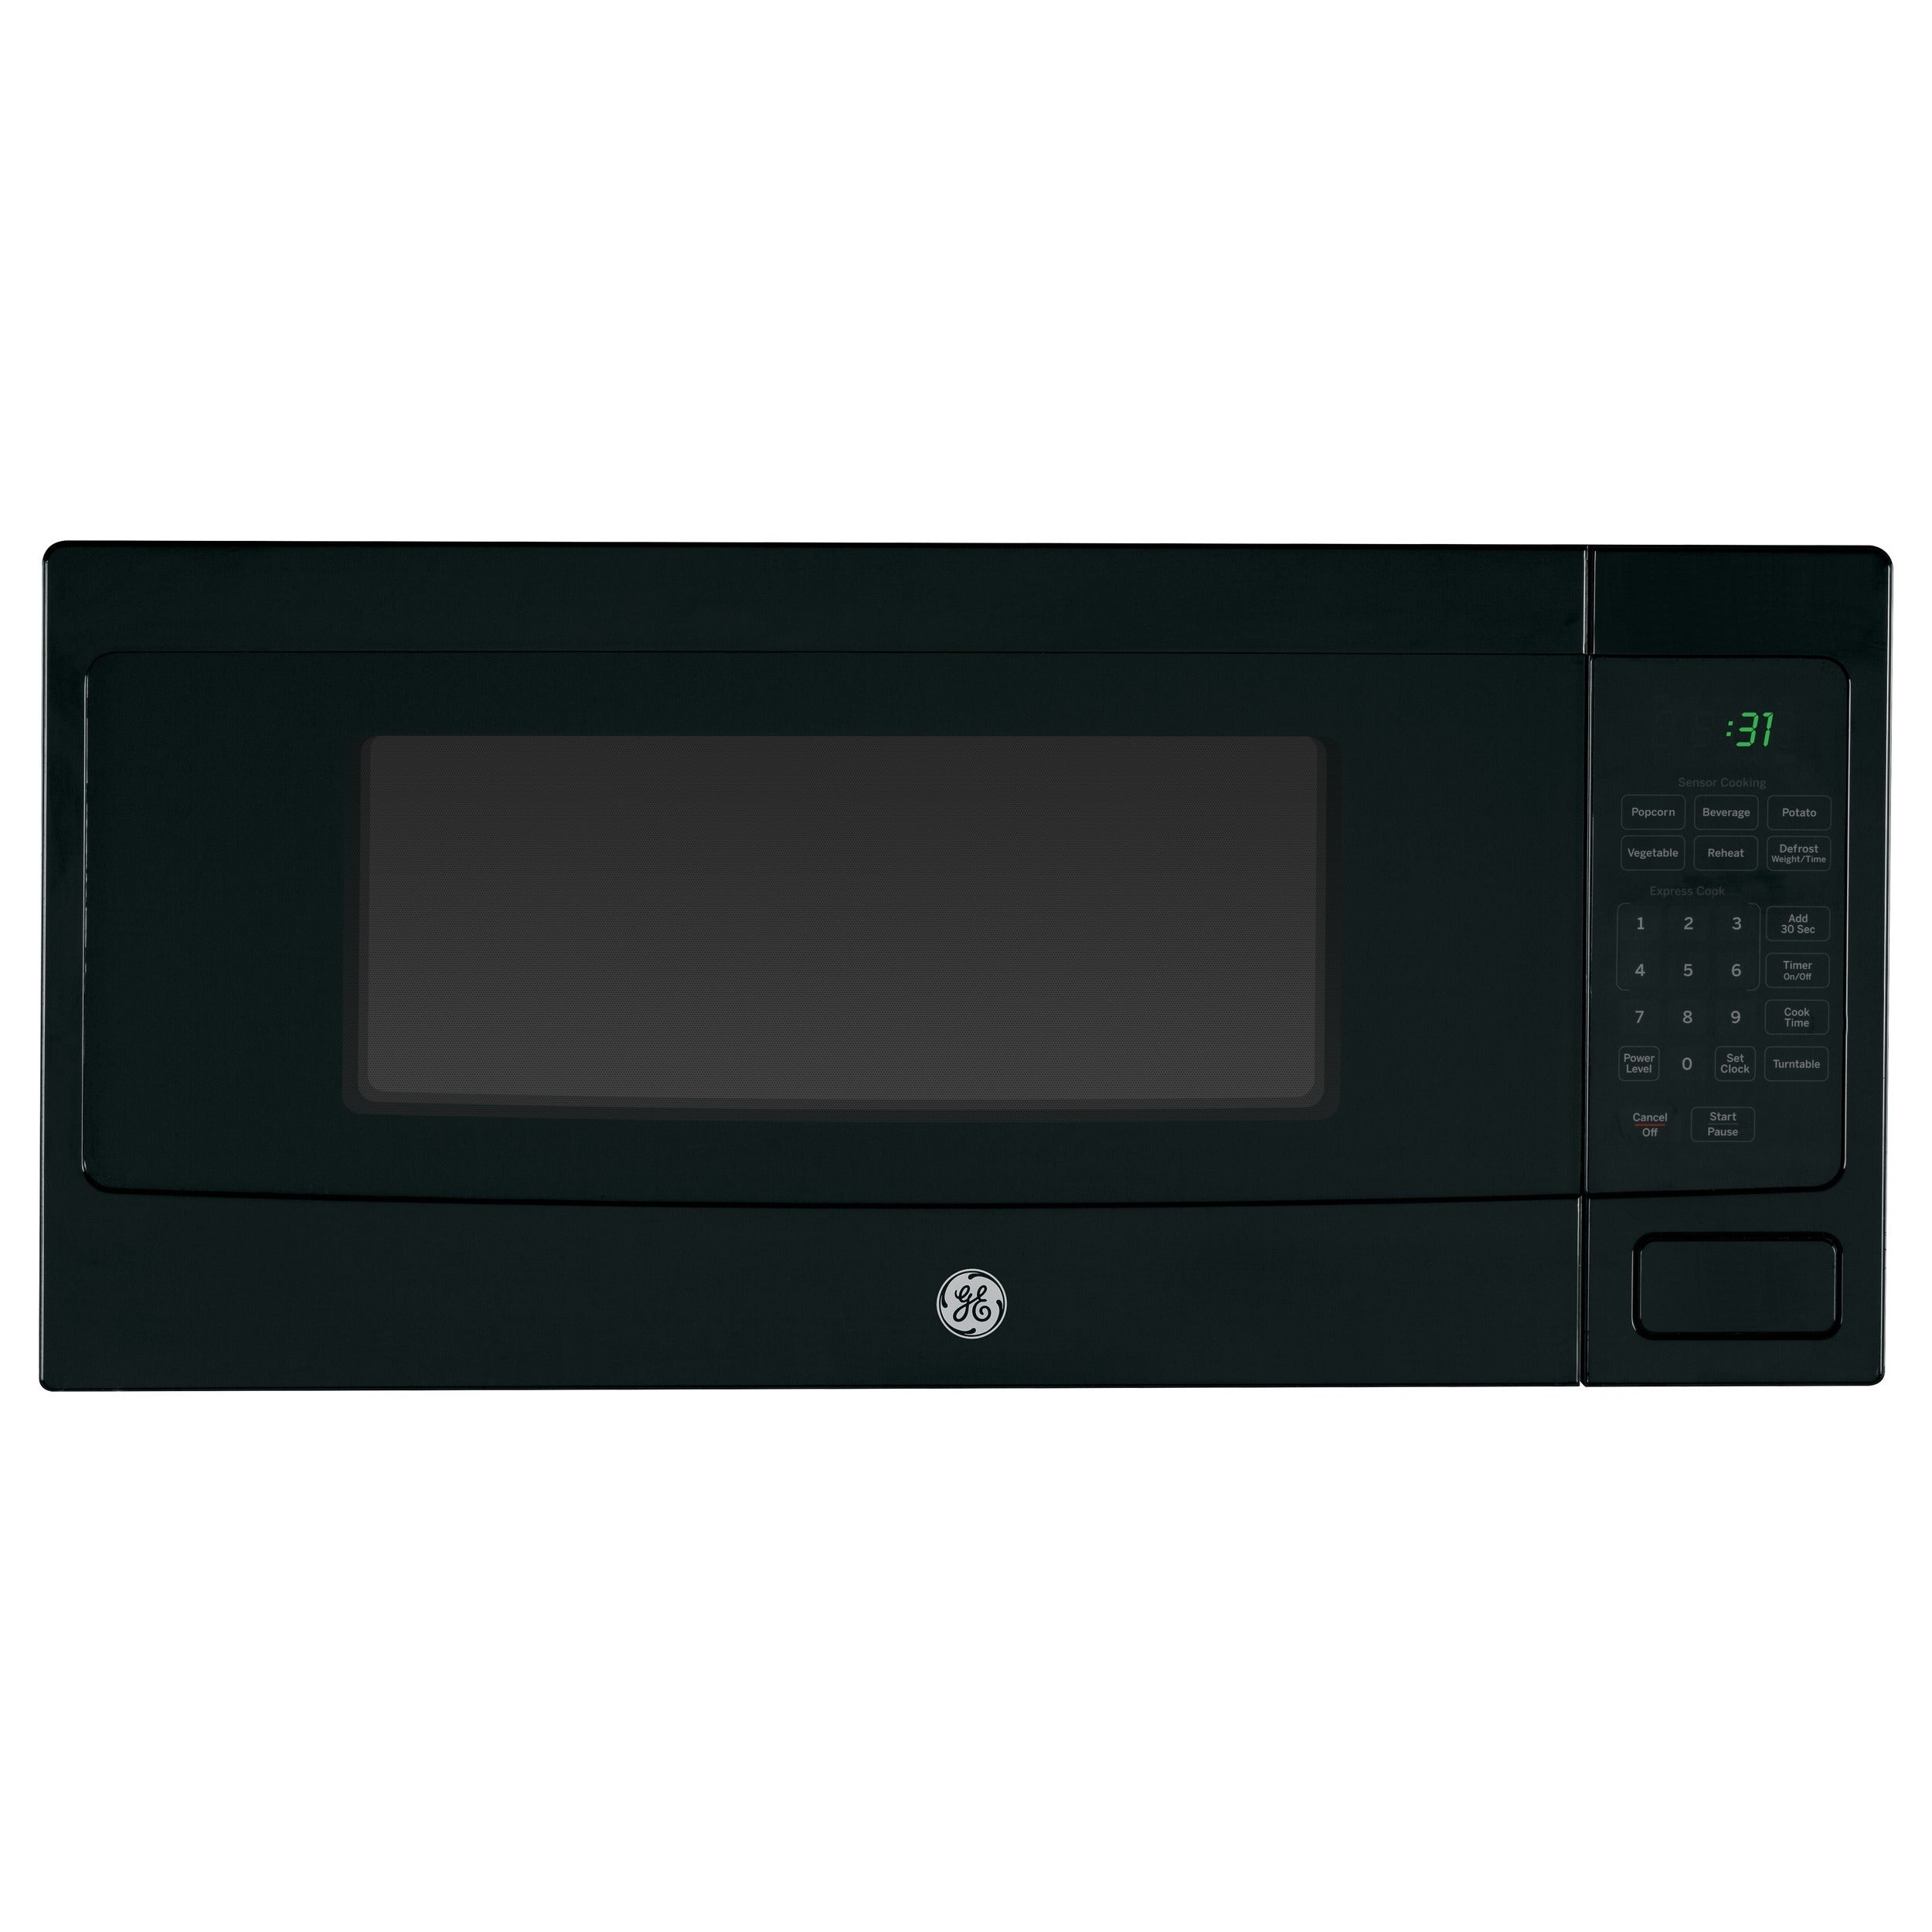 Ge Profile1 1 Cubic Foot Countertop Microwave Oven Black